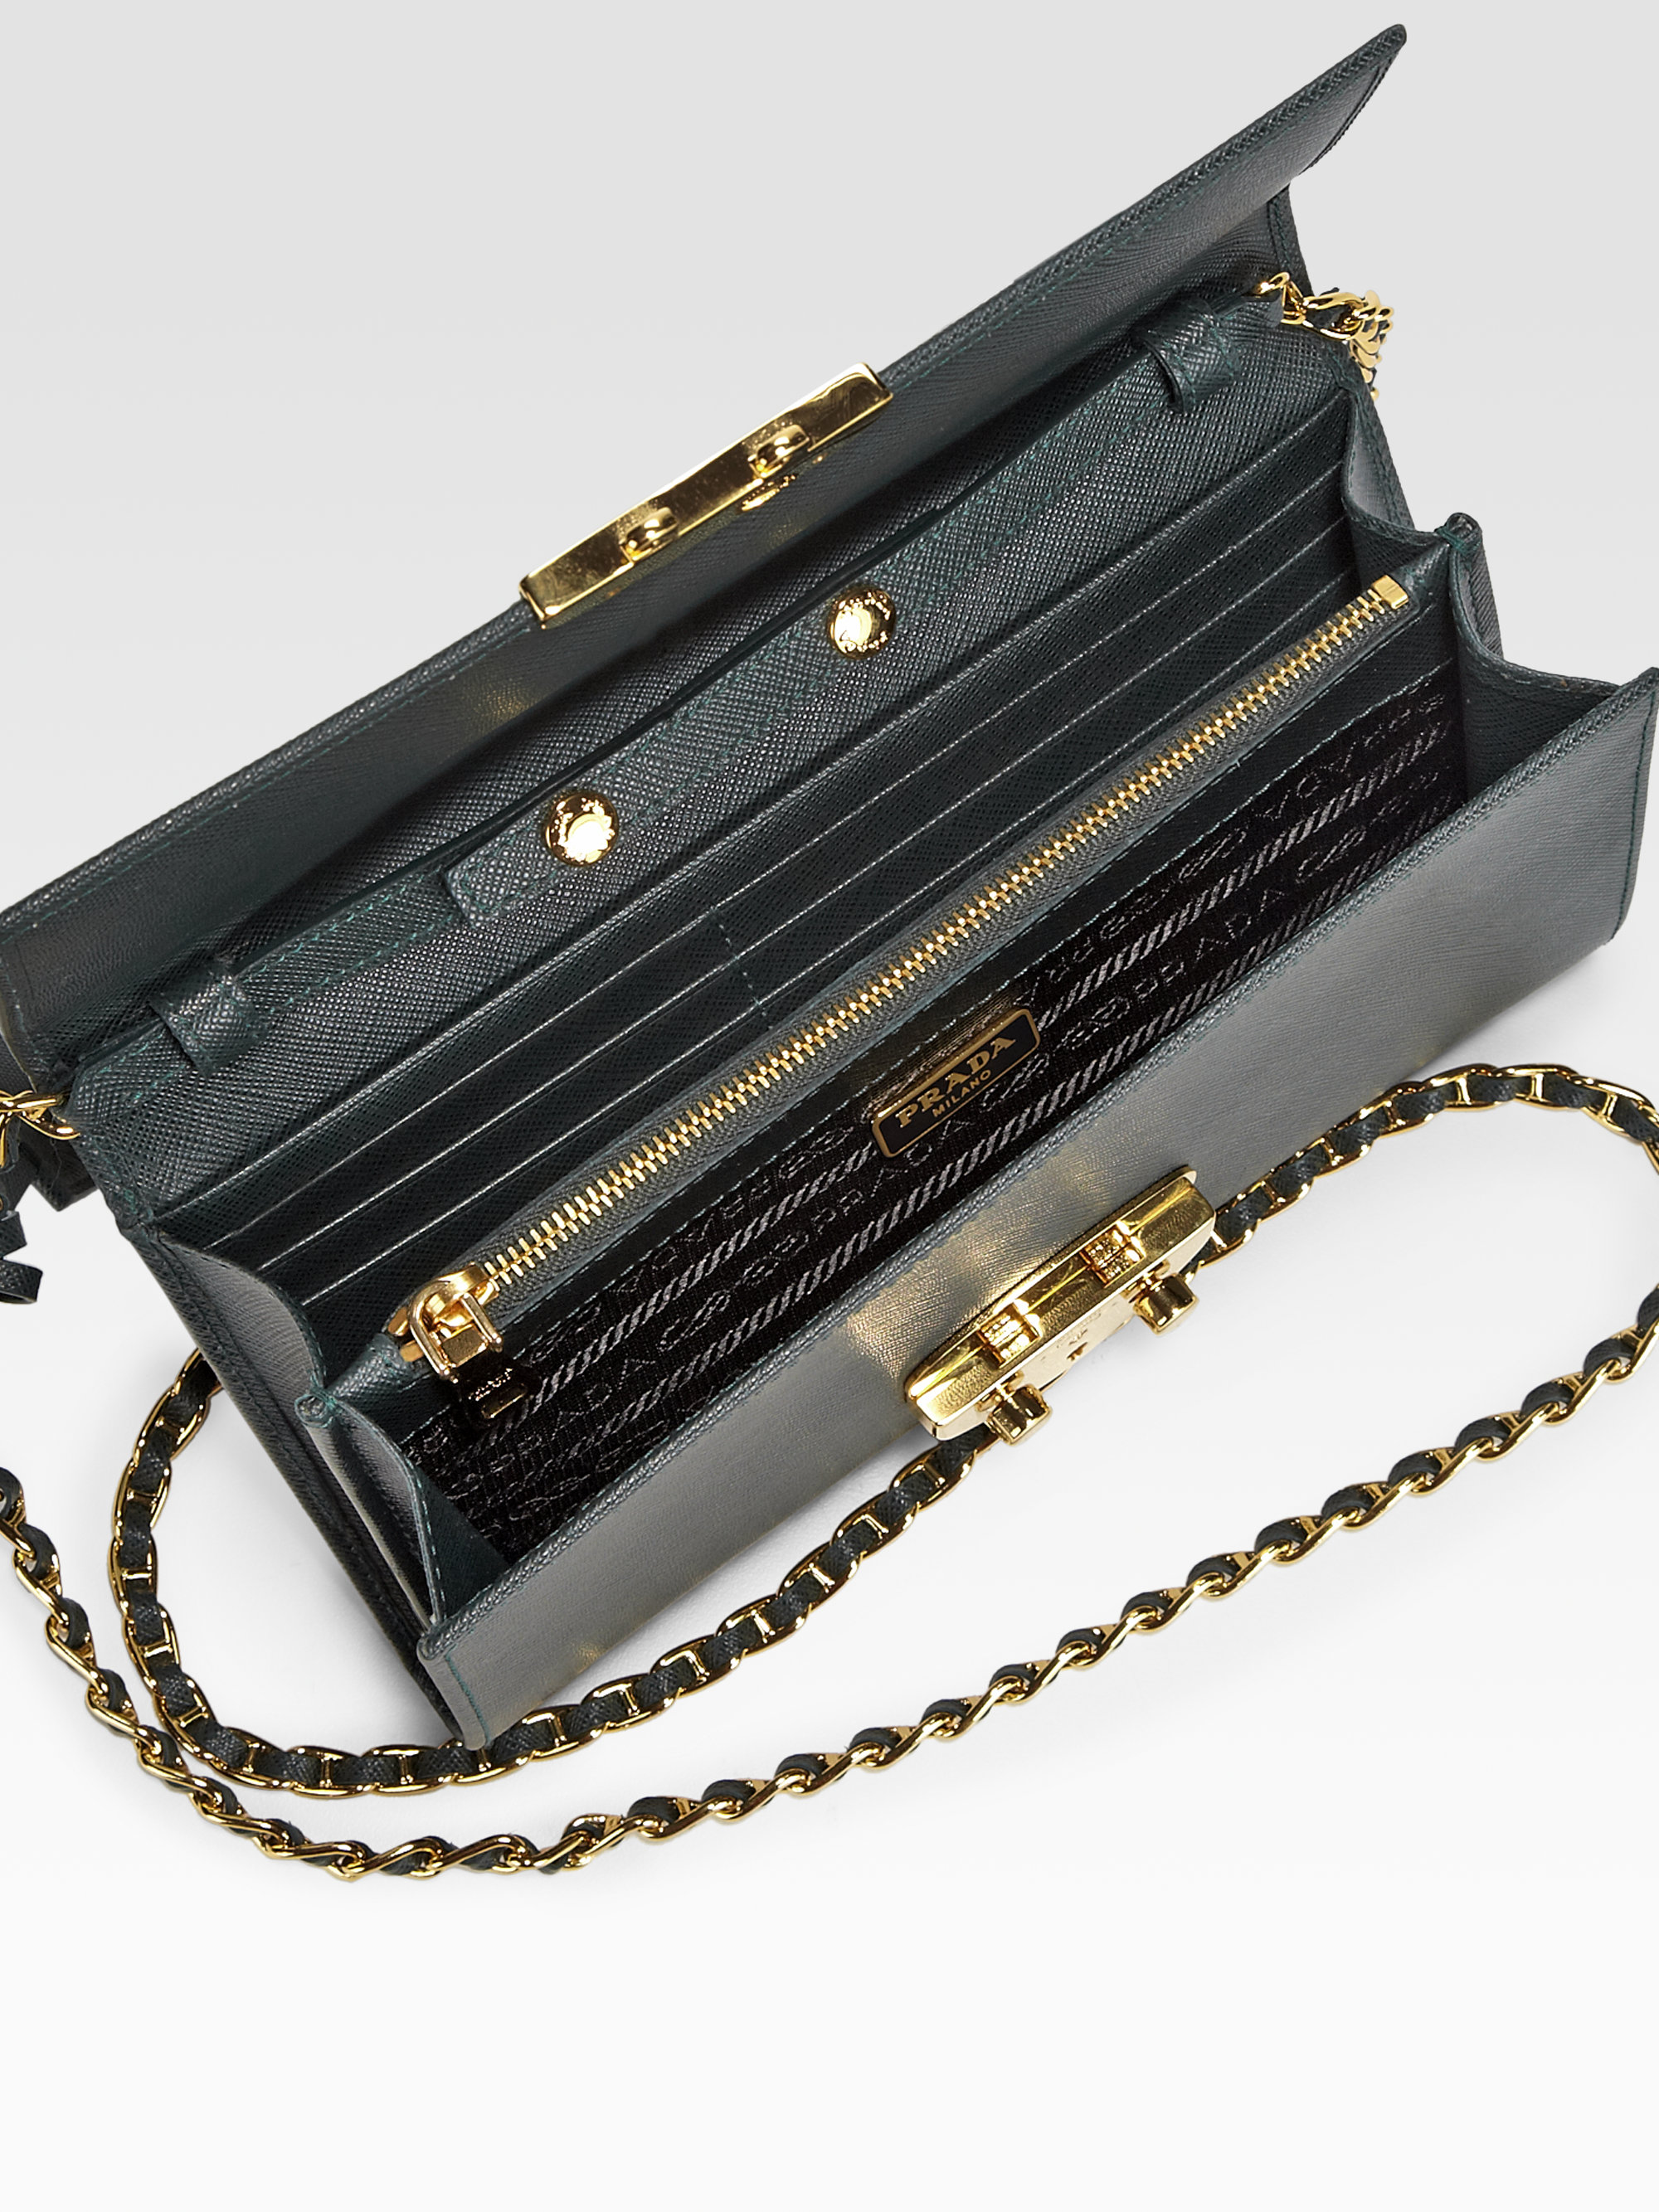 Prada saffiano chain wallet Clearance 2018 Sale Perfect Best Place To Buy Buy Cheap Limited Edition WECsrJZSU6